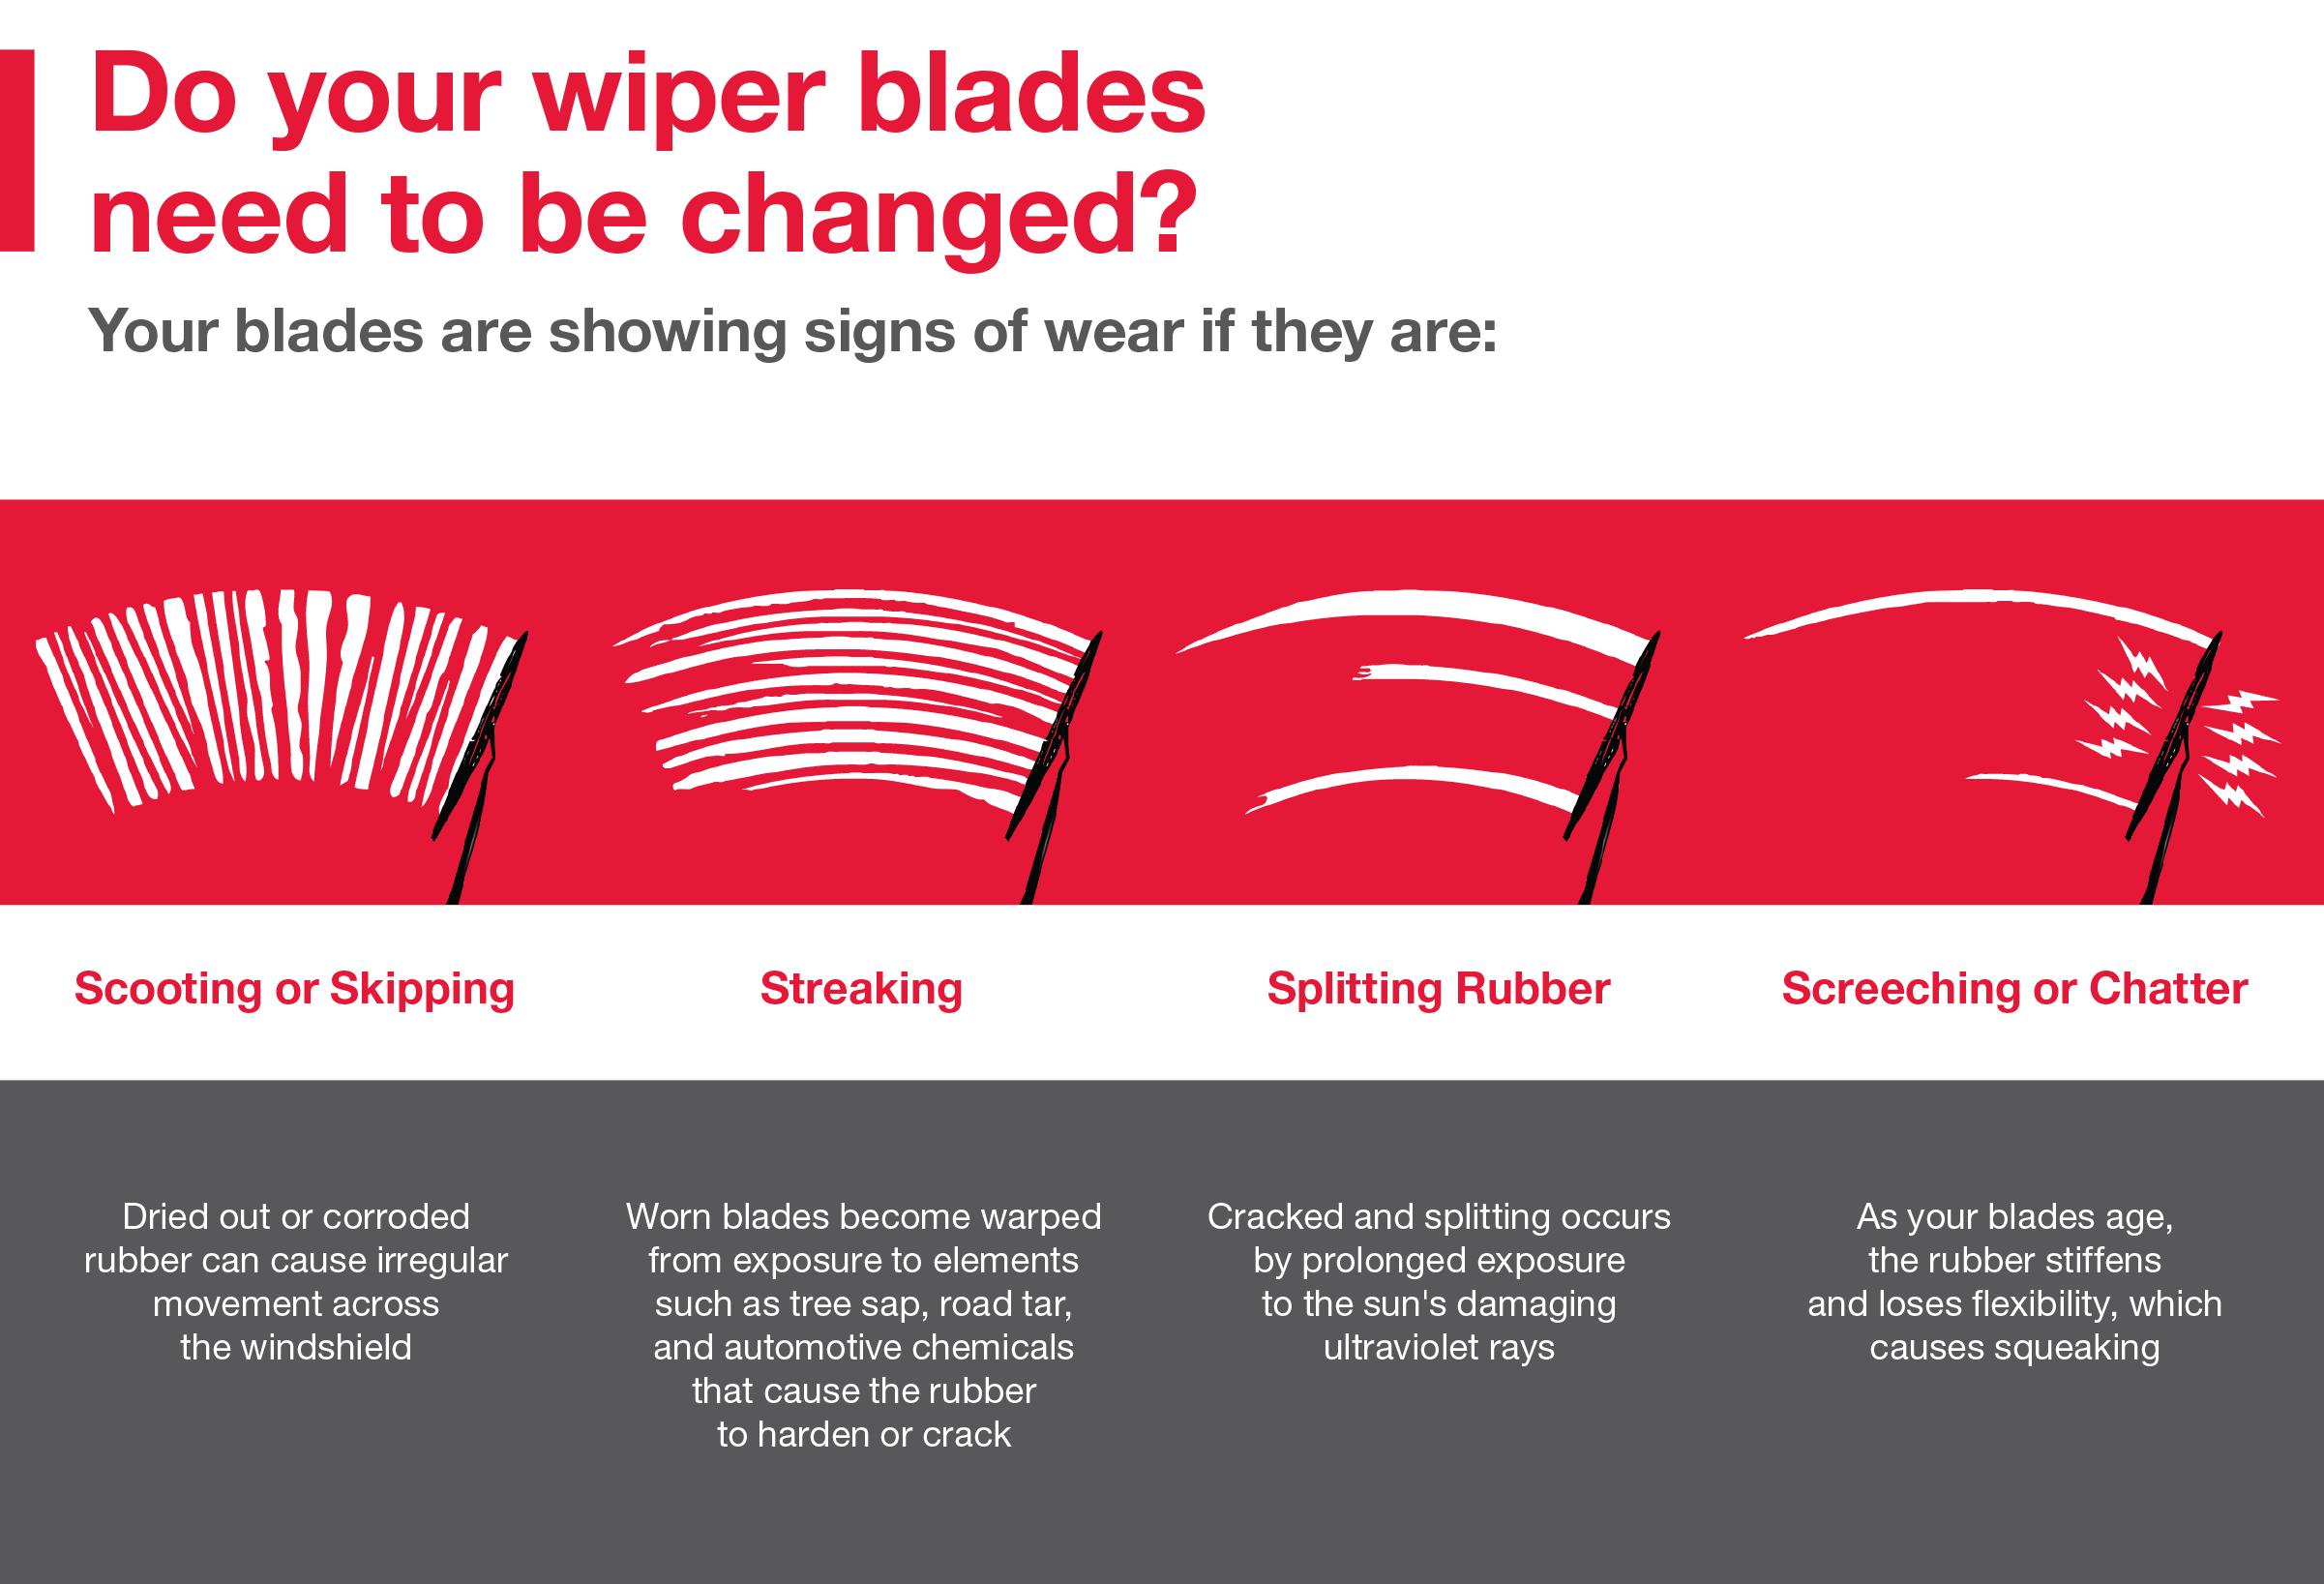 Do Your Wiper Blades Need to be Changed?